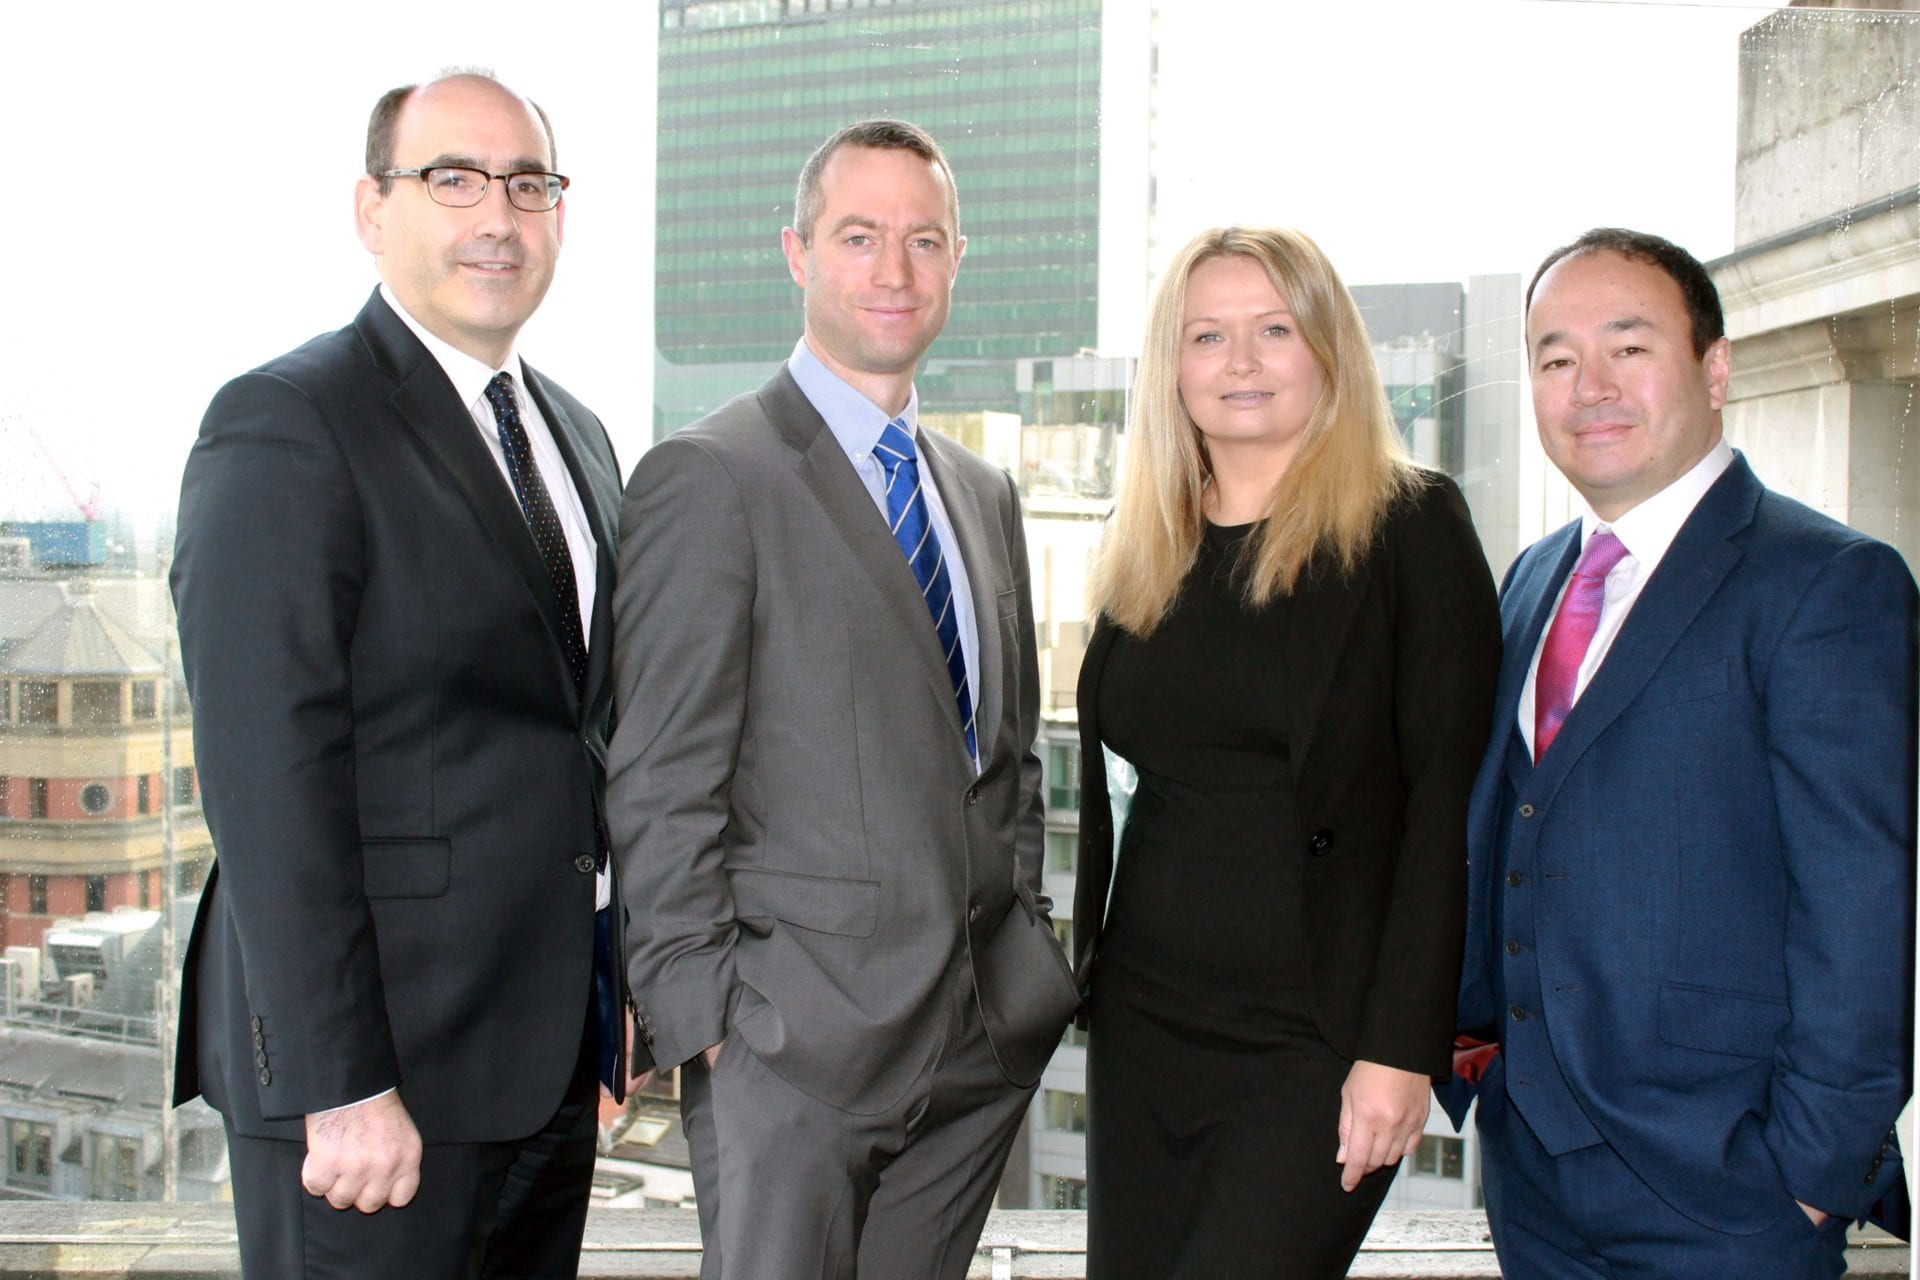 Stowe Family Law Launches in Manchester